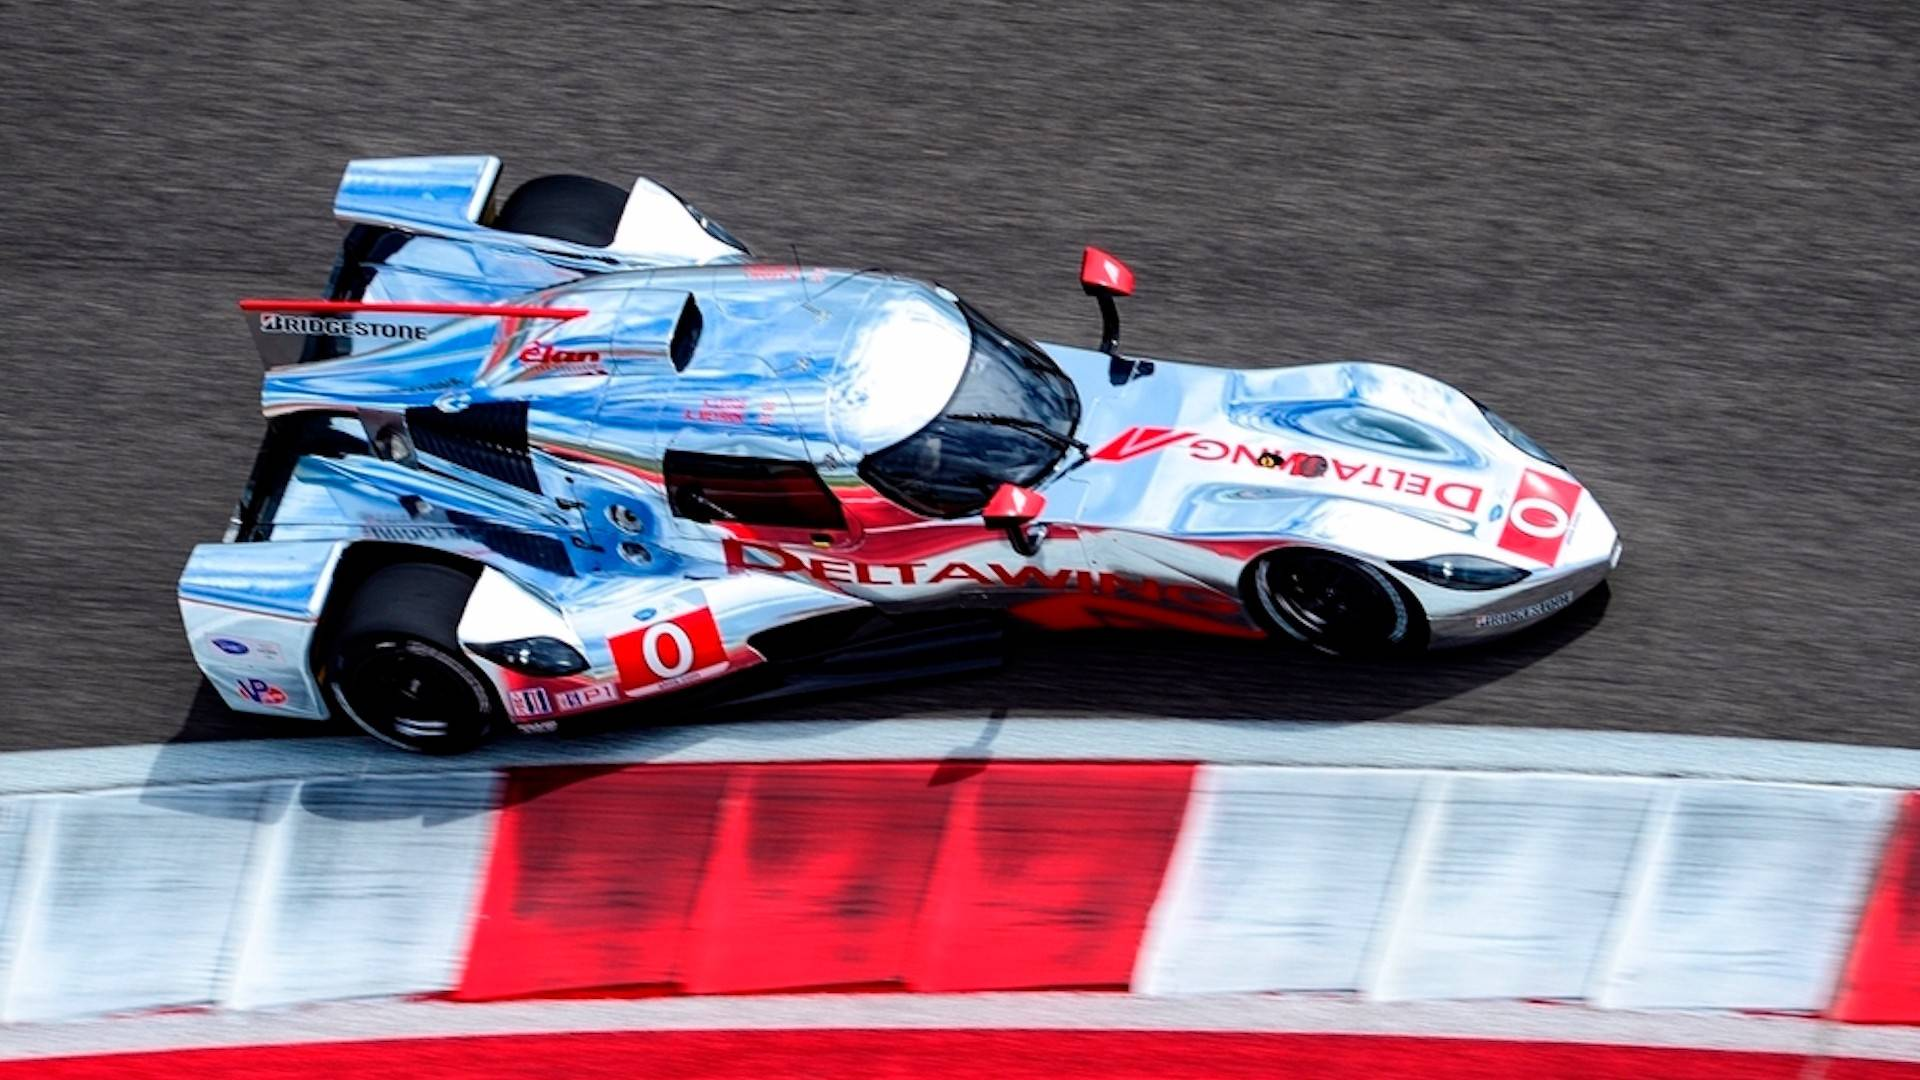 DeltaWing 2013 for sale (1)